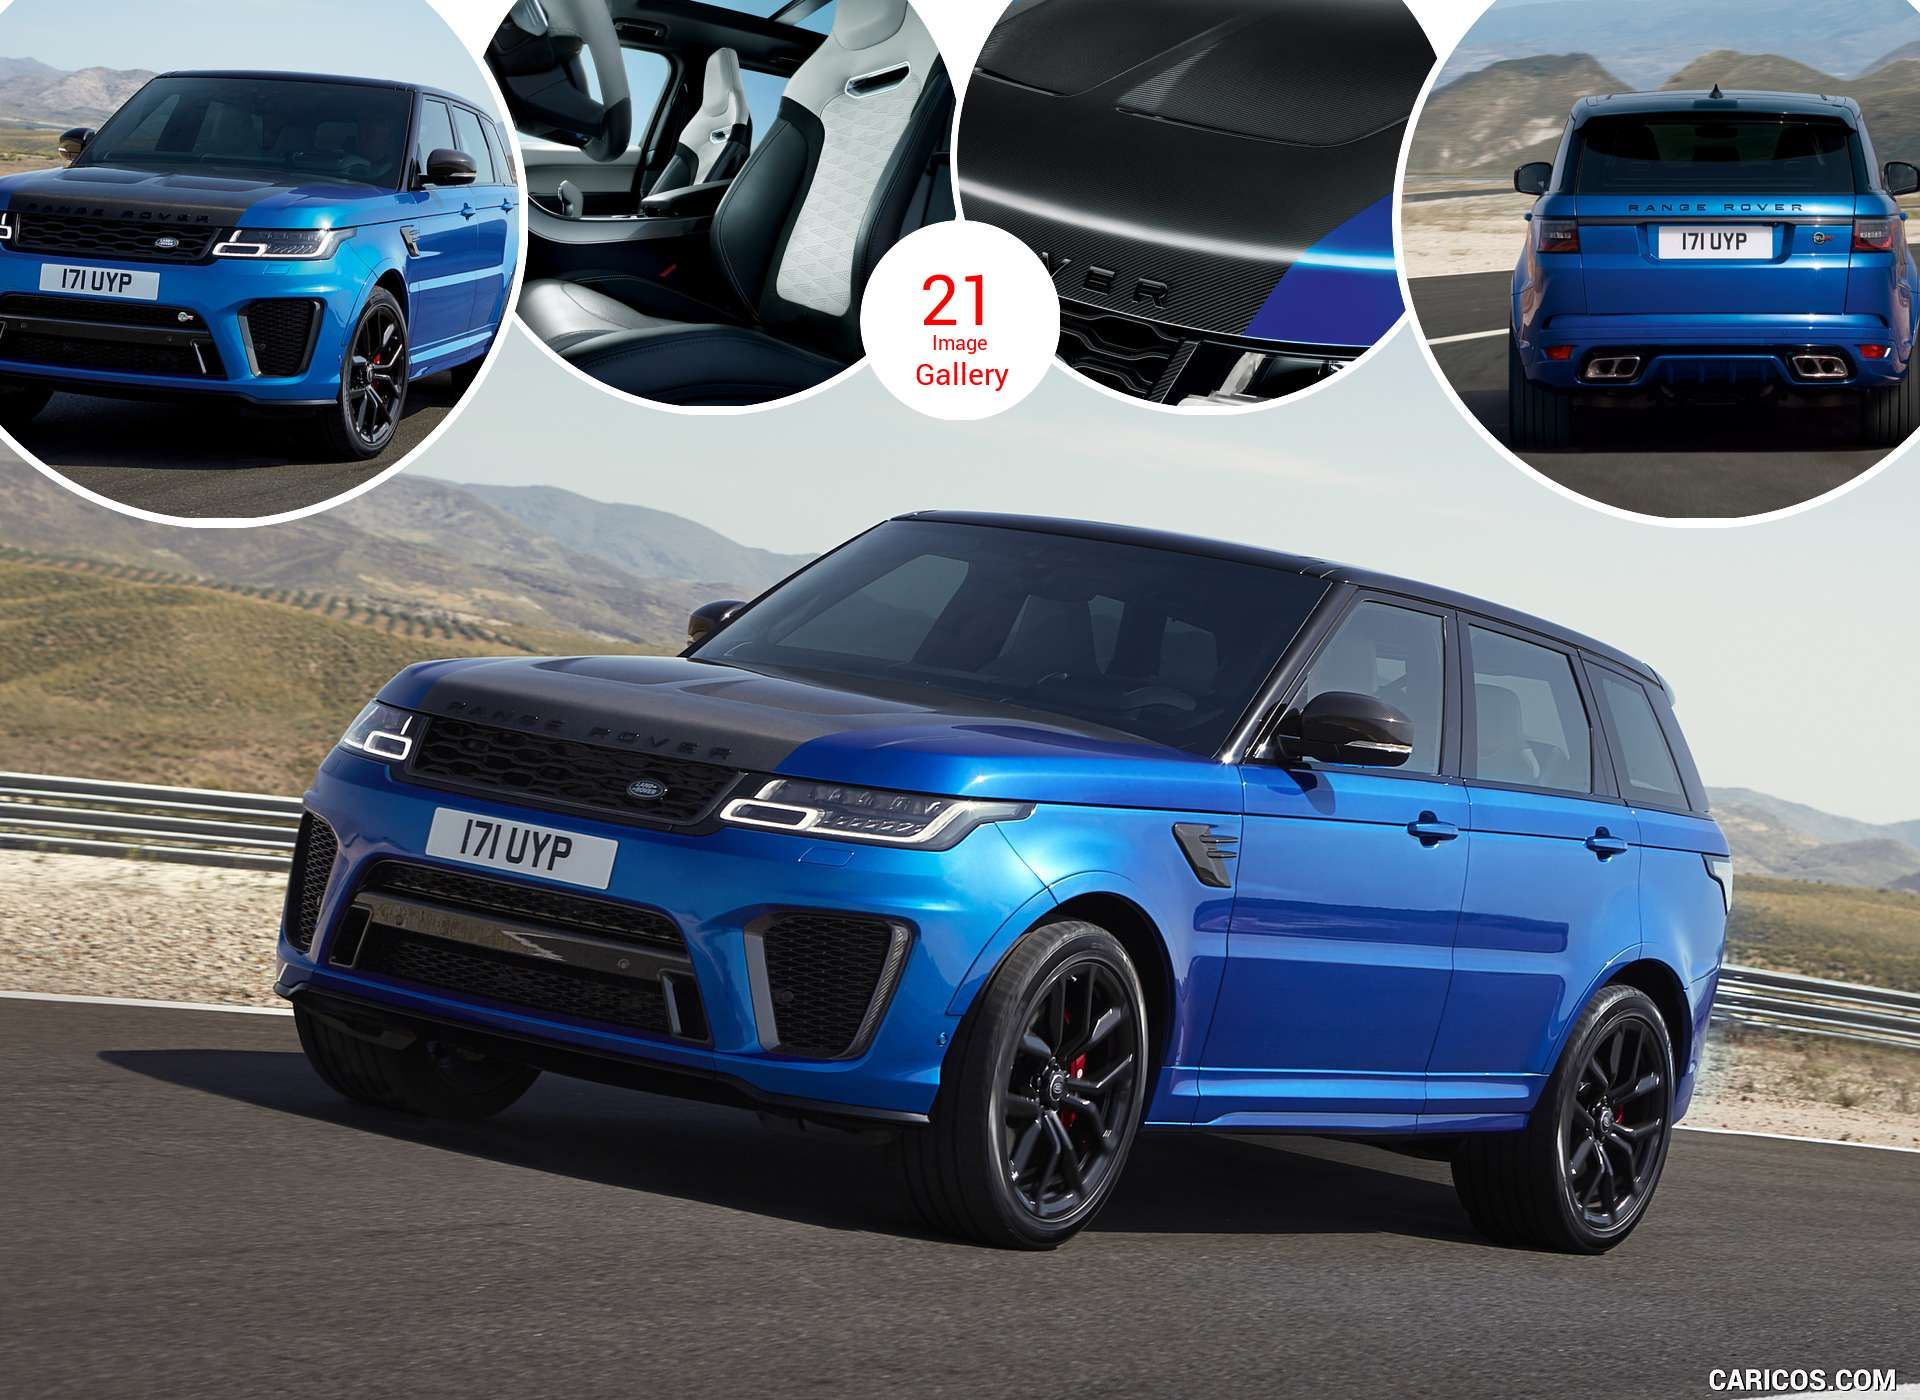 Range Rover Sport Svr 2018 Range Rover Sport Range Rover Supercharged Range Rover